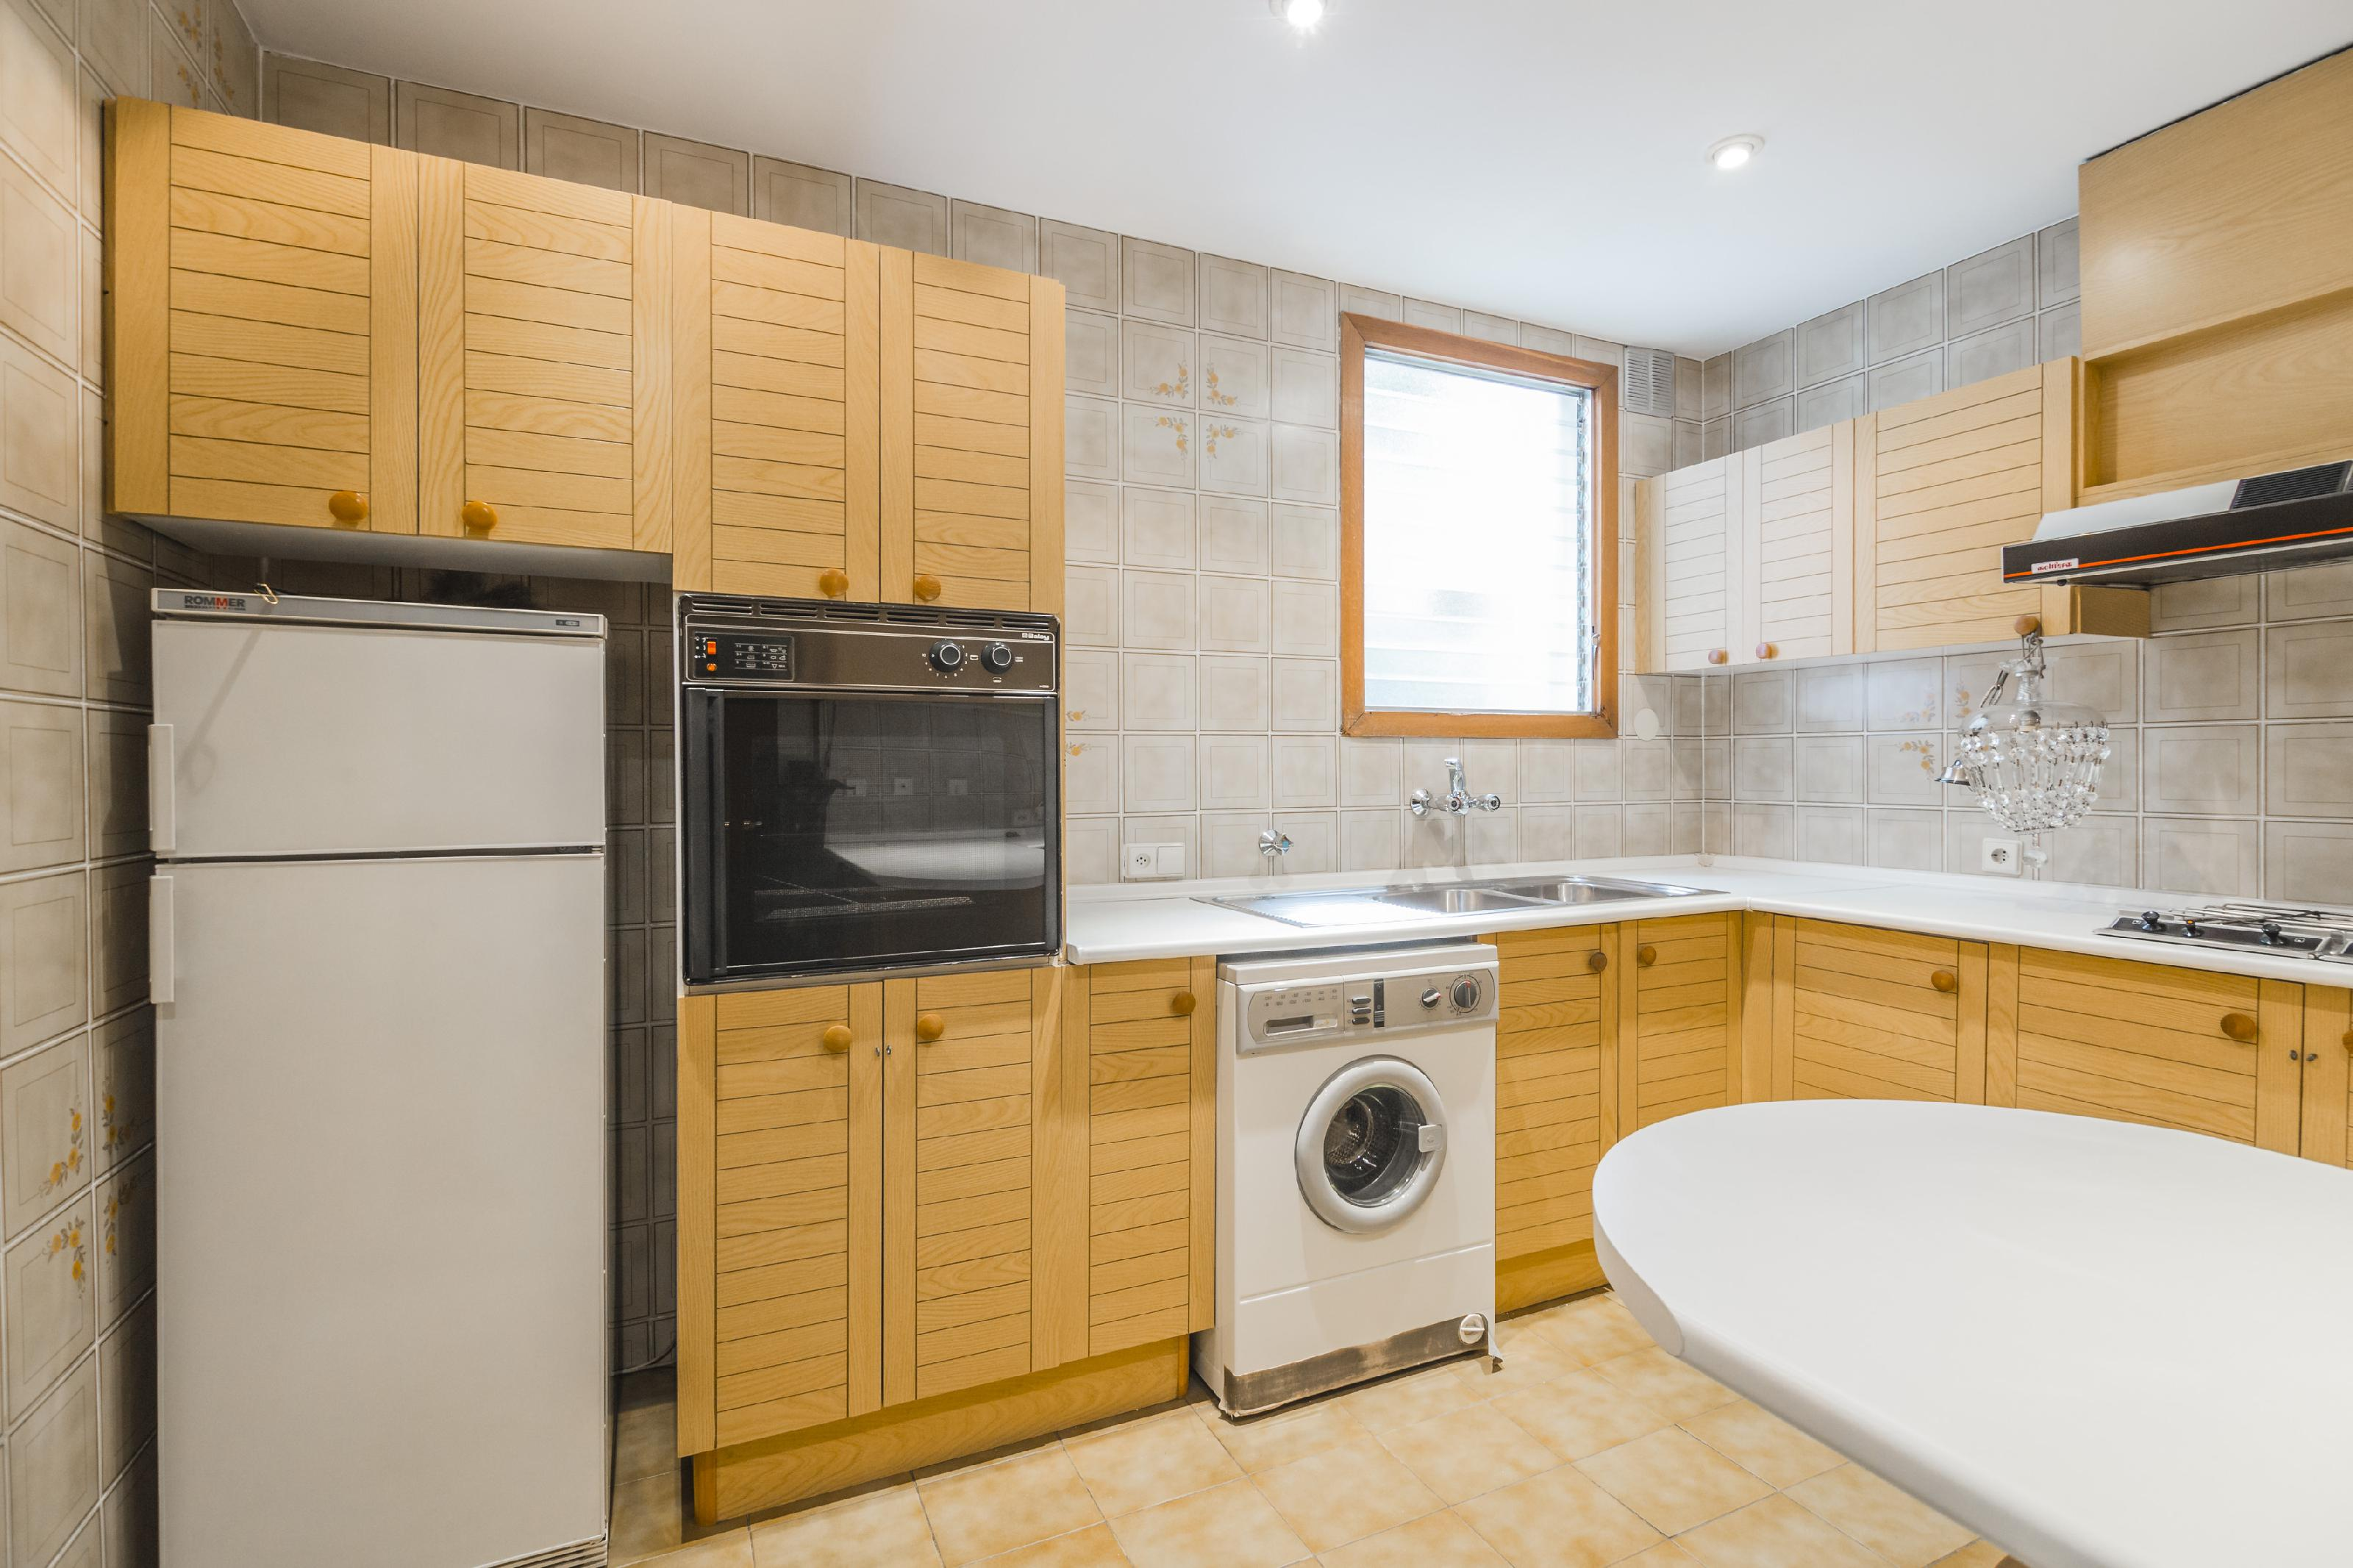 223855 Penthouse for sale in Sarrià-Sant Gervasi, Sant Gervasi-Galvany 29